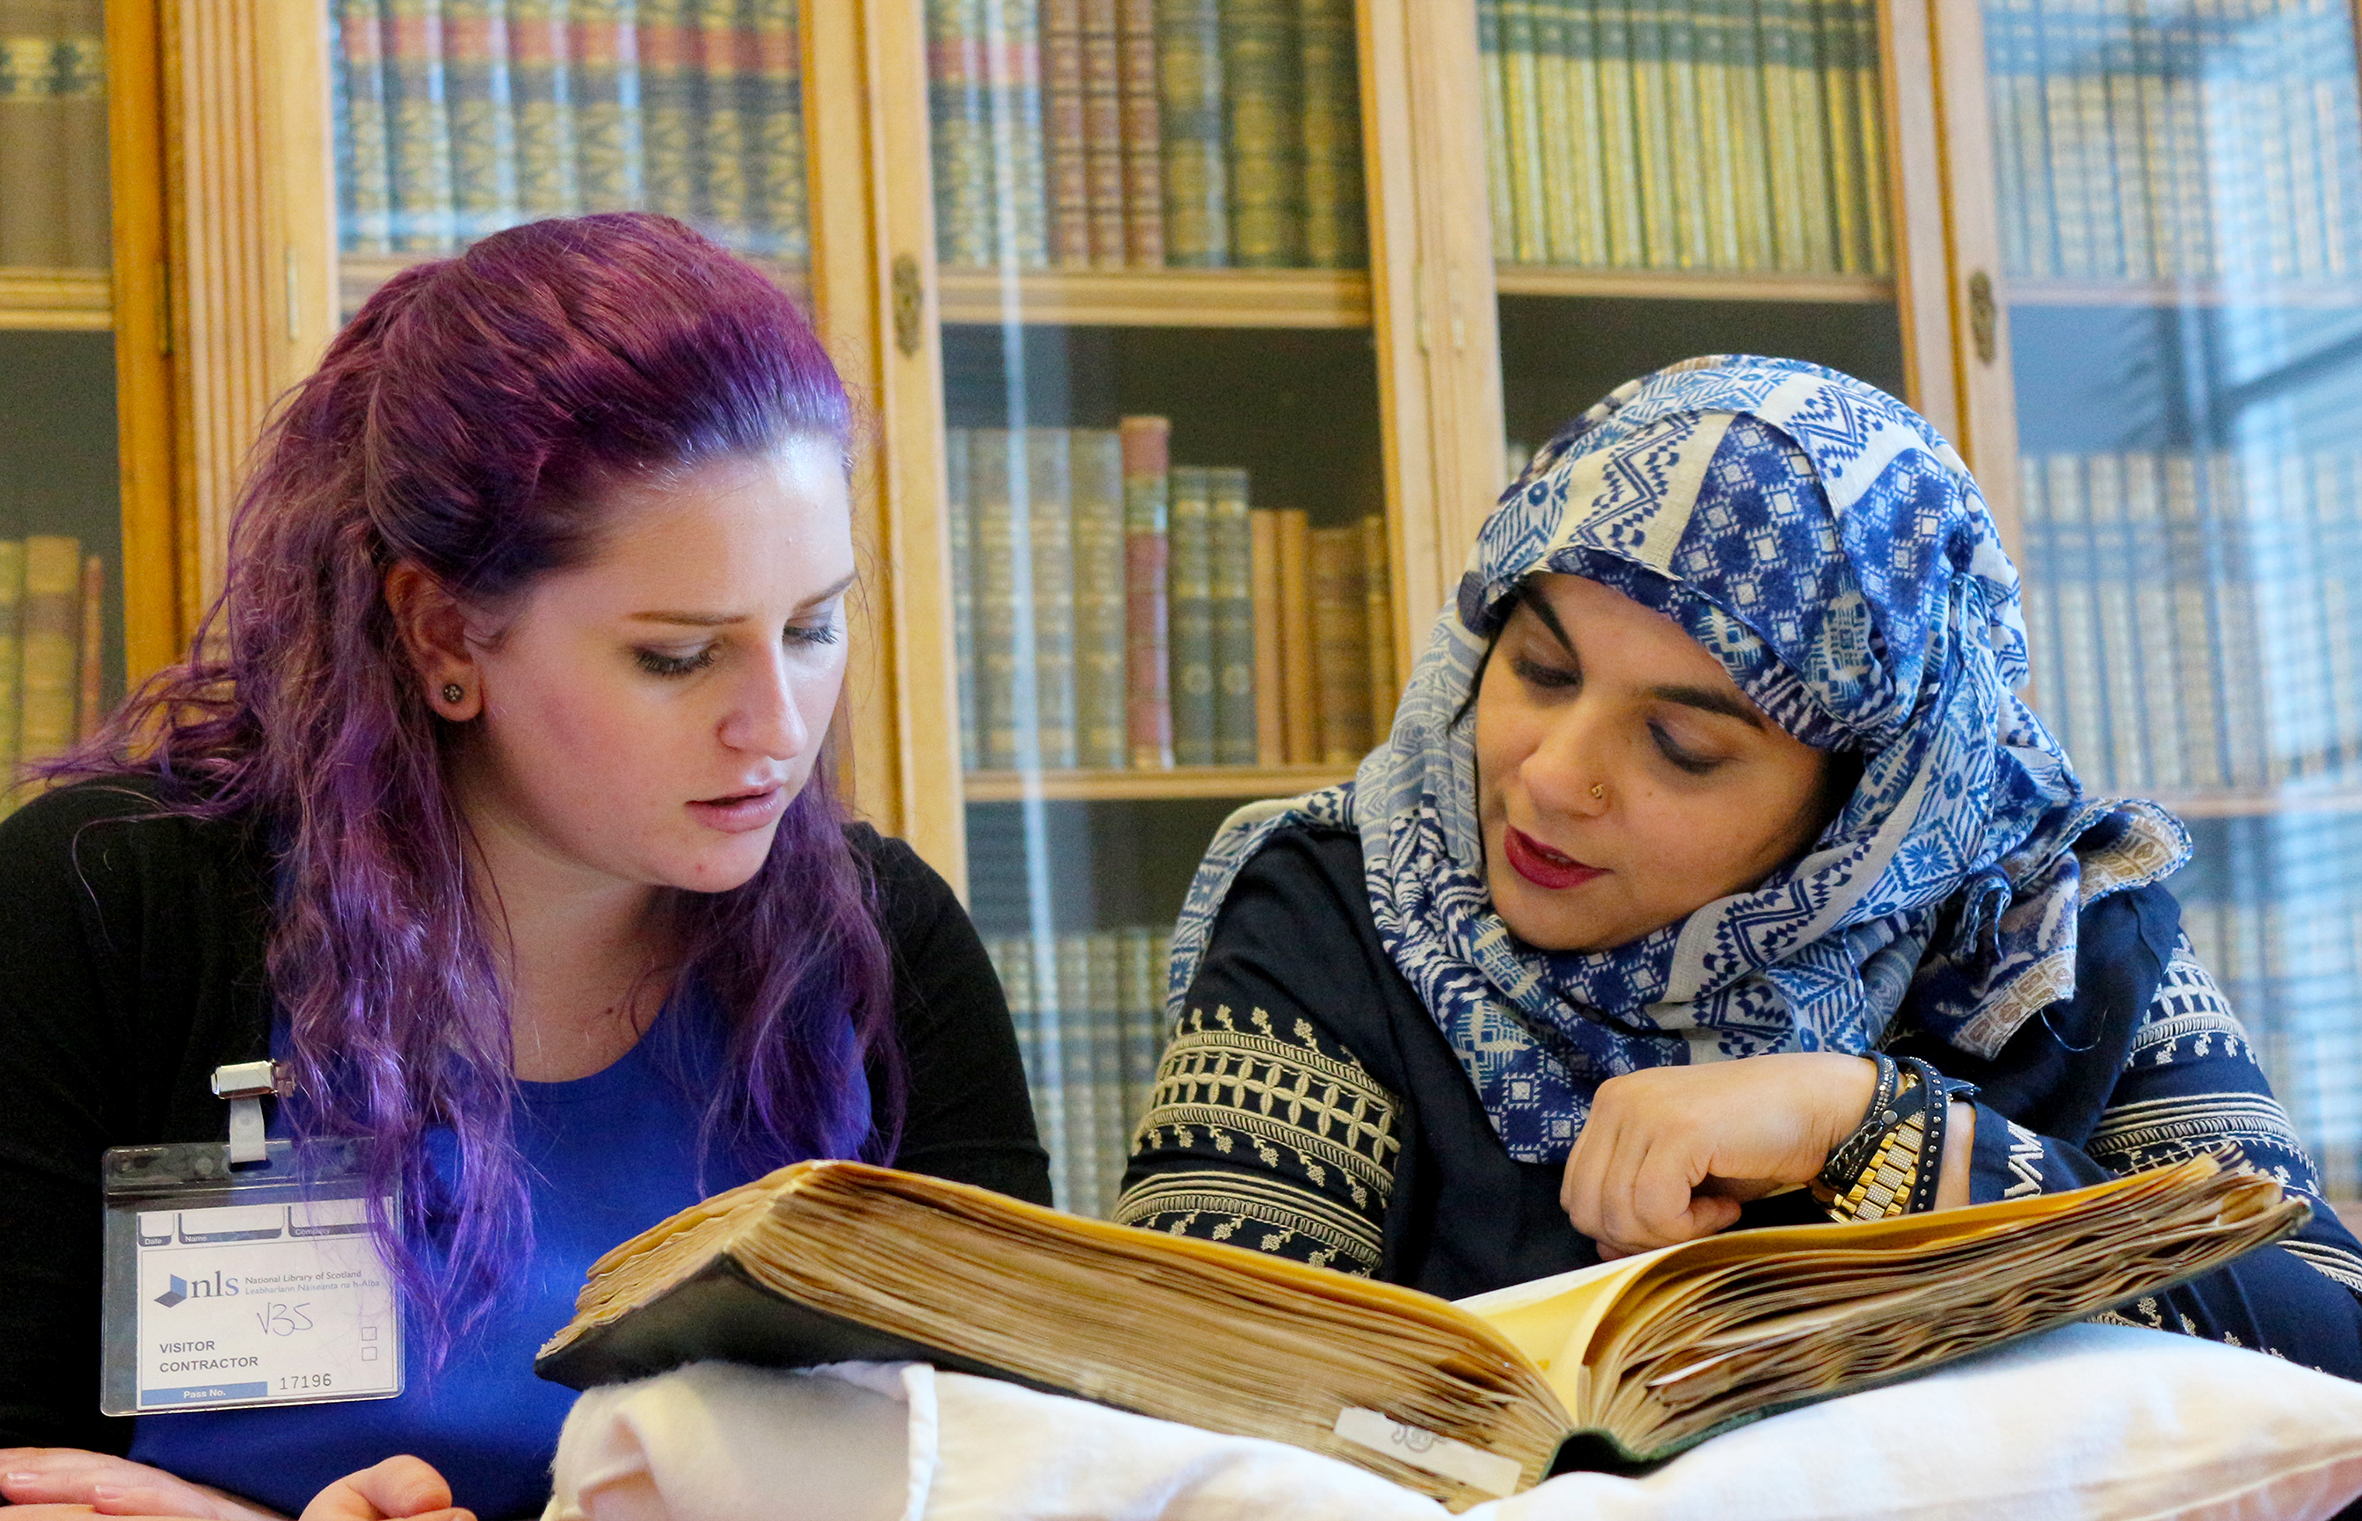 Scotswummin researchers Becca Duffell of Cheviot Youth and Fozzia Ali, Youth Worker, Falkirk Council.